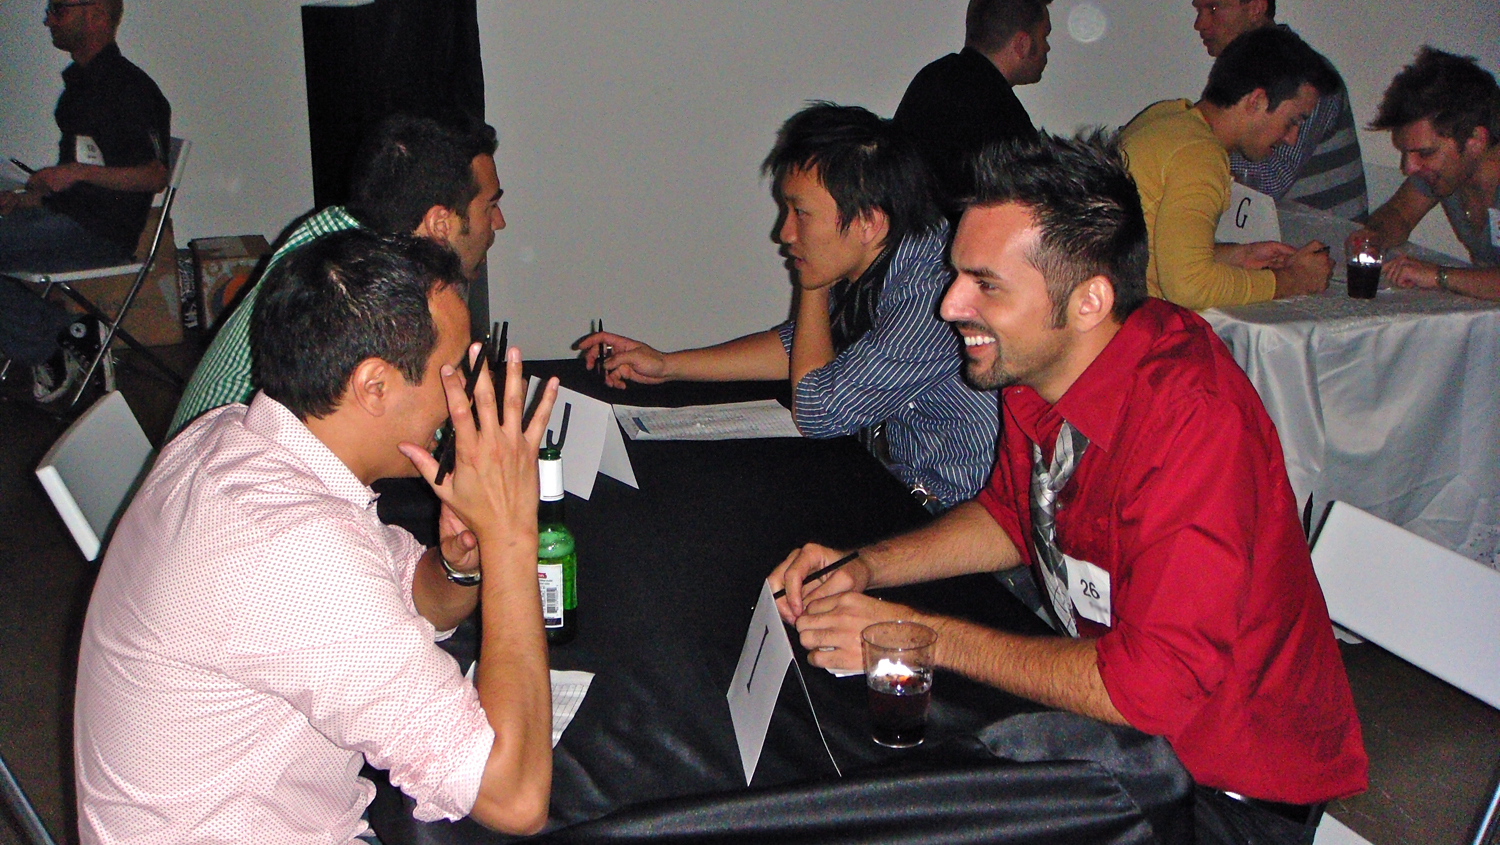 gay speed dating events